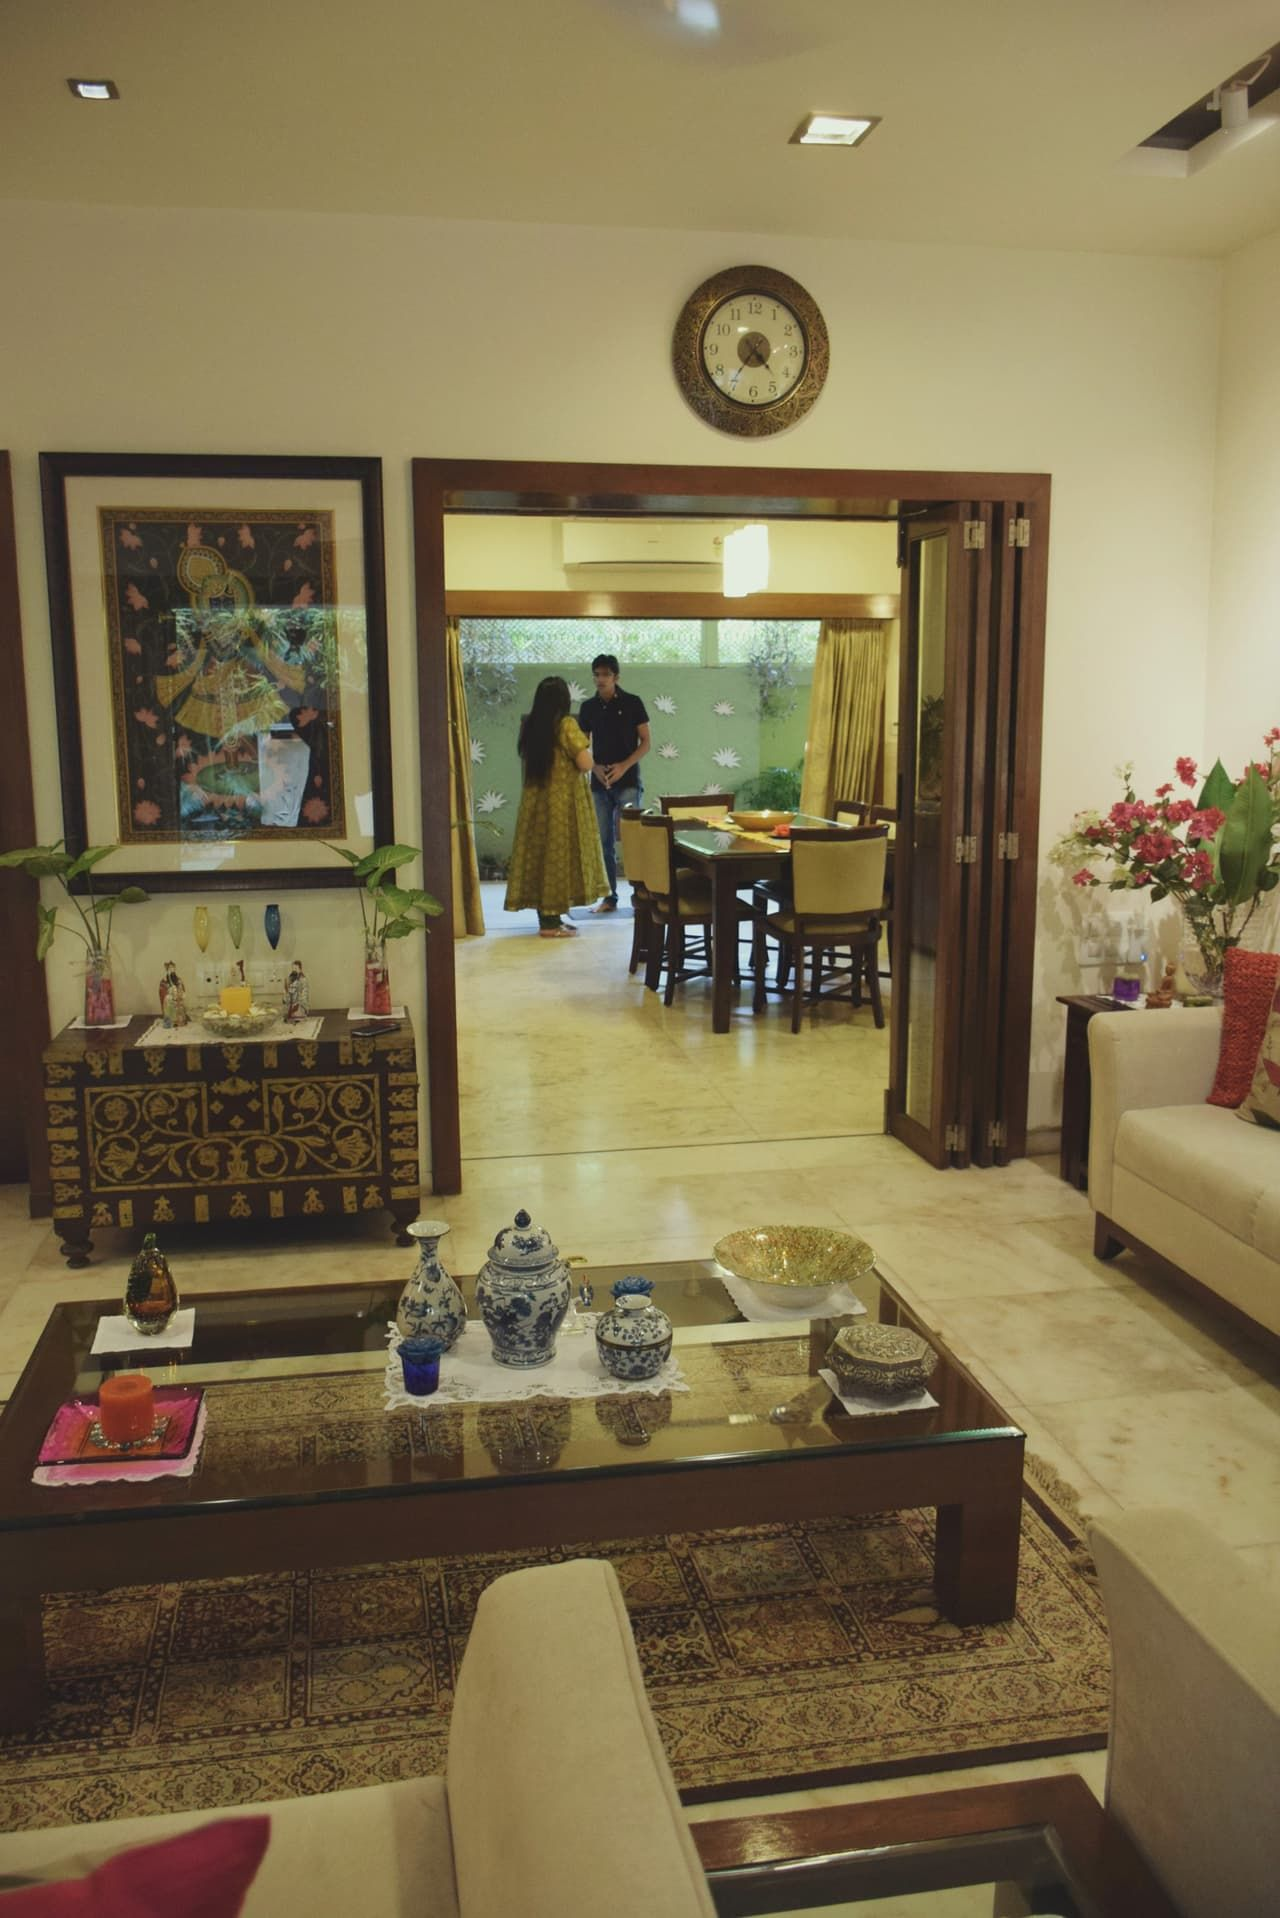 Alpavi Utpal S Mix Of Old And New Keralam Indian Home Decor